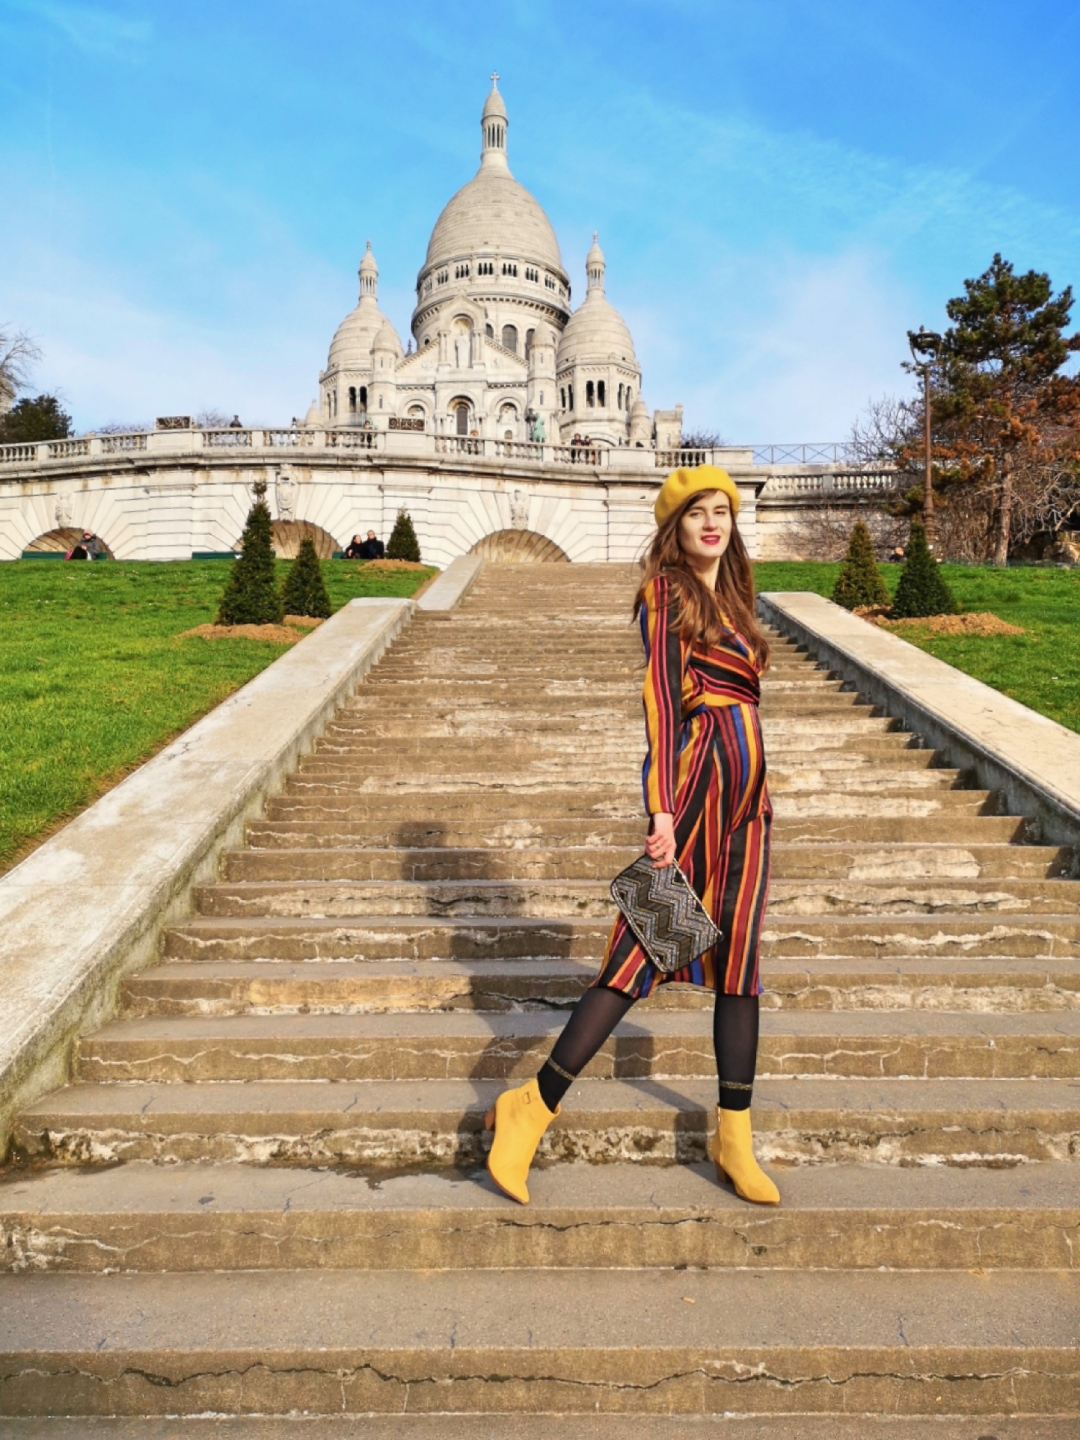 Most Instagrammable spots in Paris France - Montmartre hill Sacre Coeur